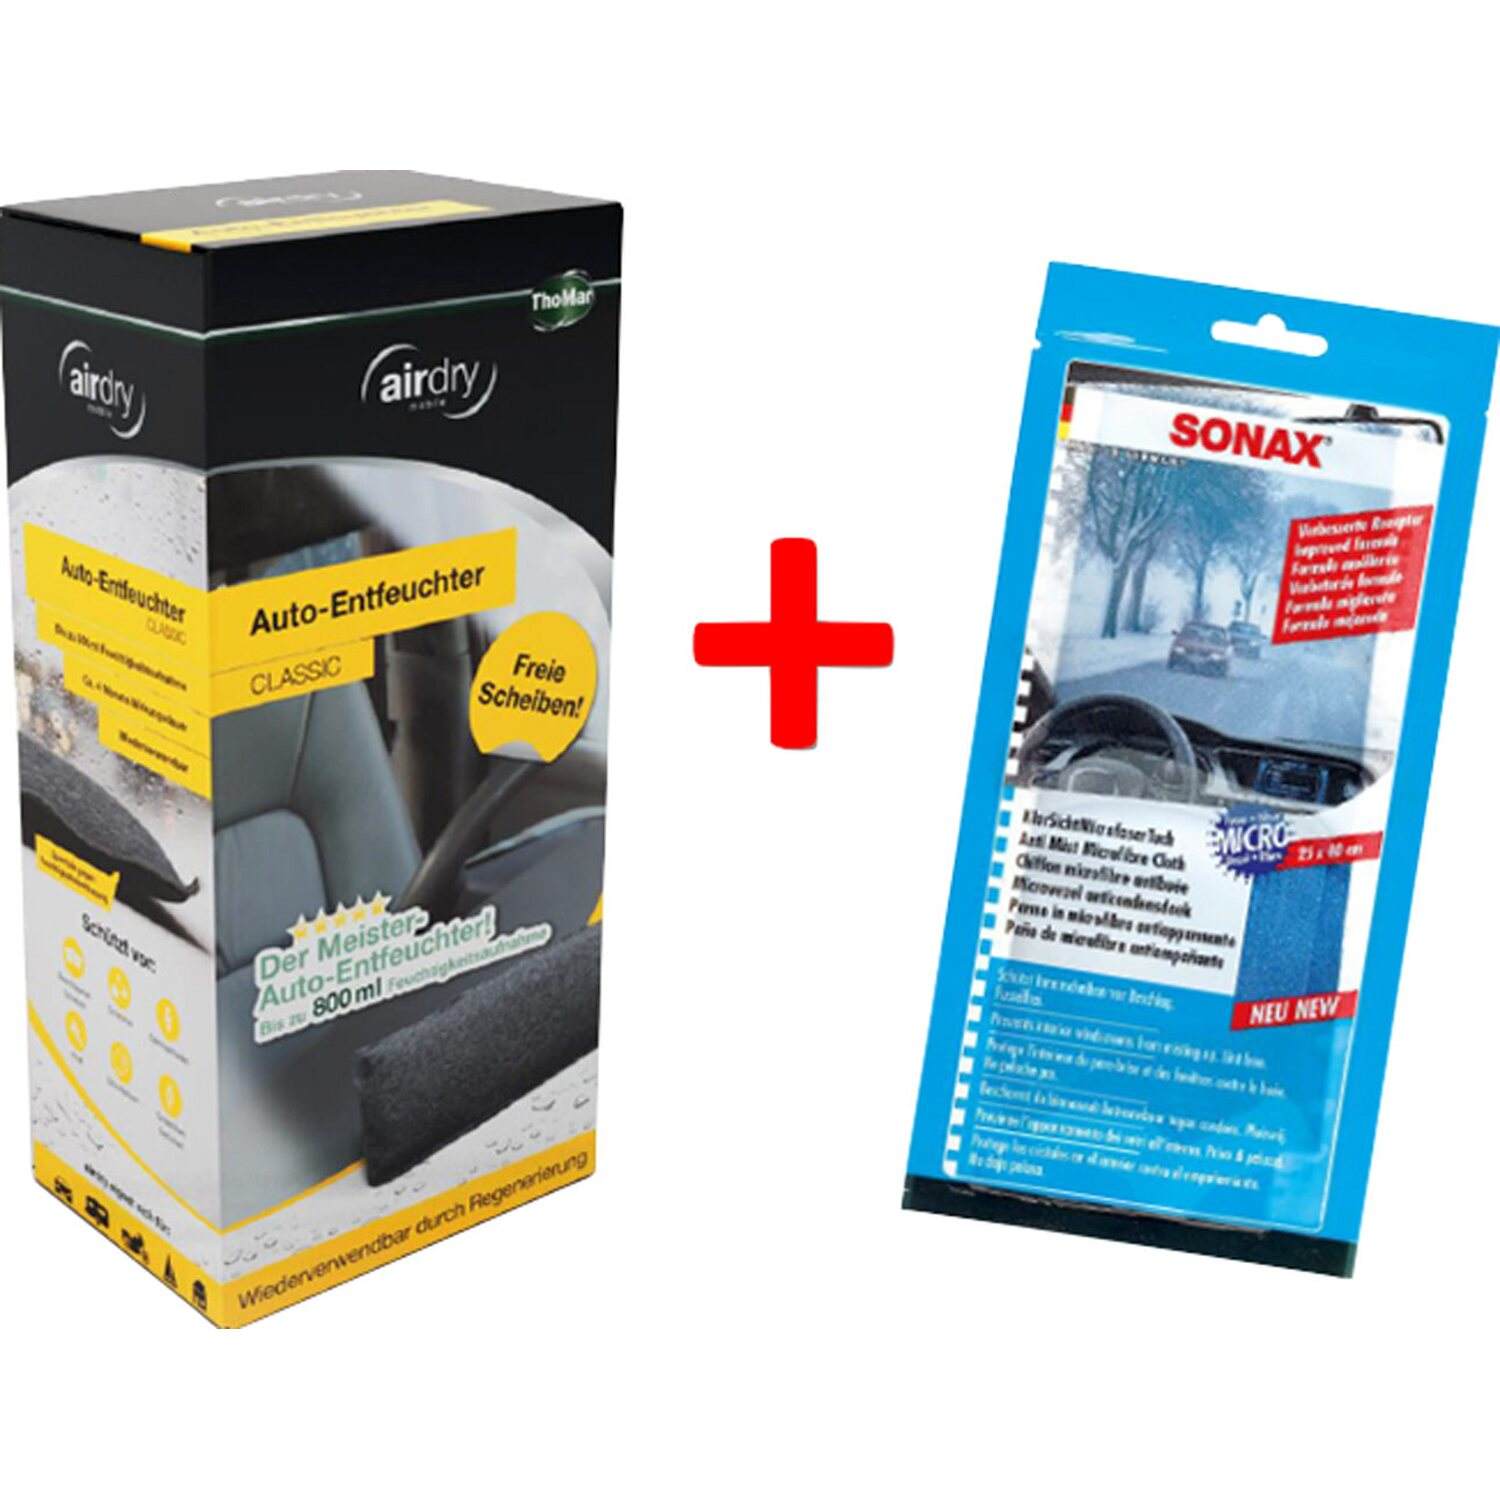 ThoMar Auto-Luftentfeuchter Airdry 1 kg inkl. S...